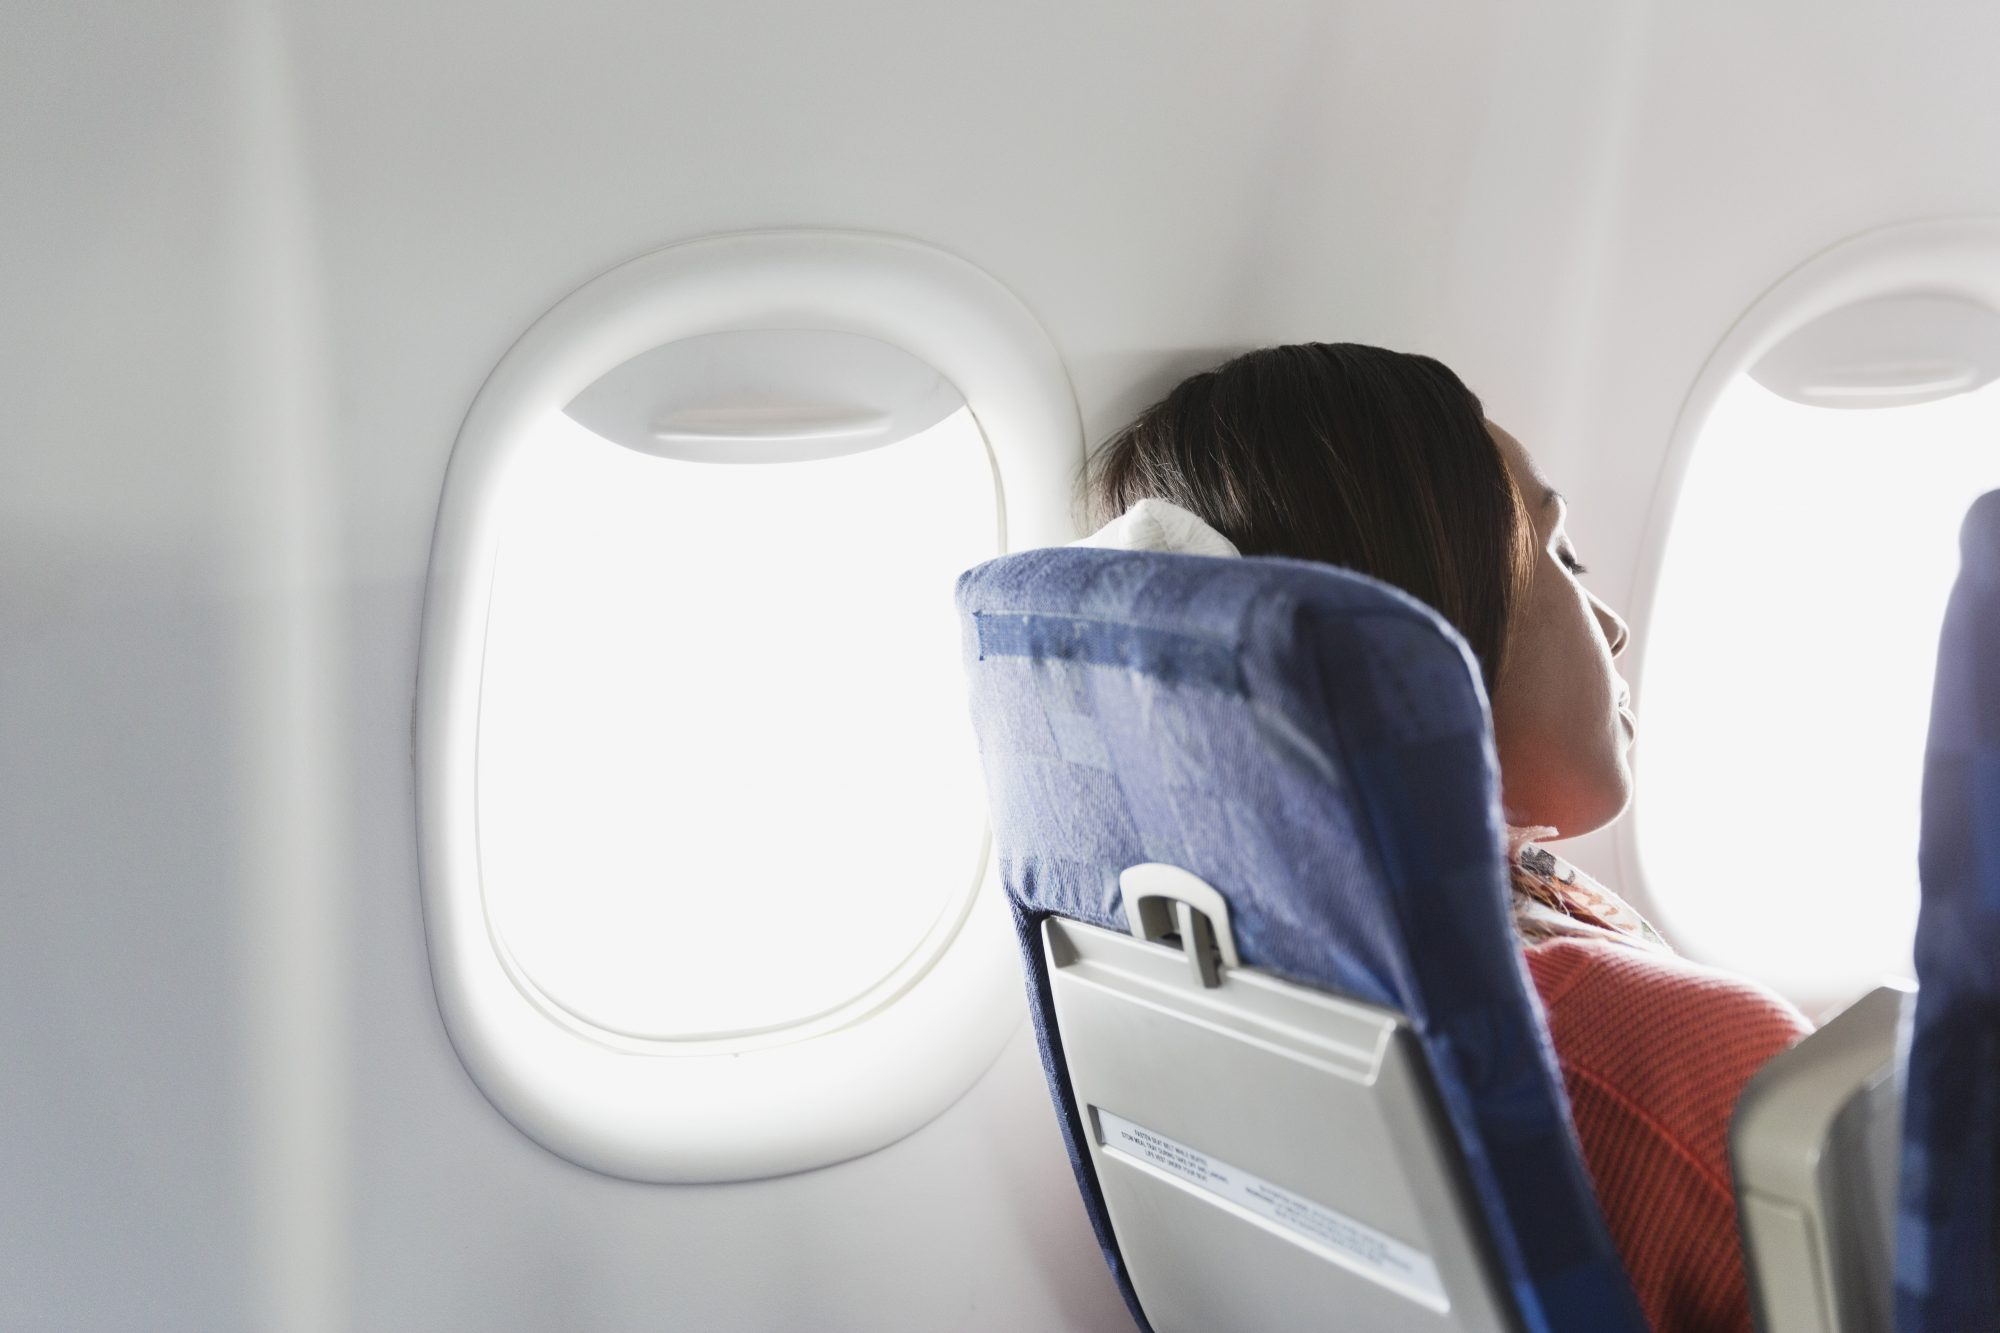 According to Frequent Flyers, These are the Best Airplane Seats for ...